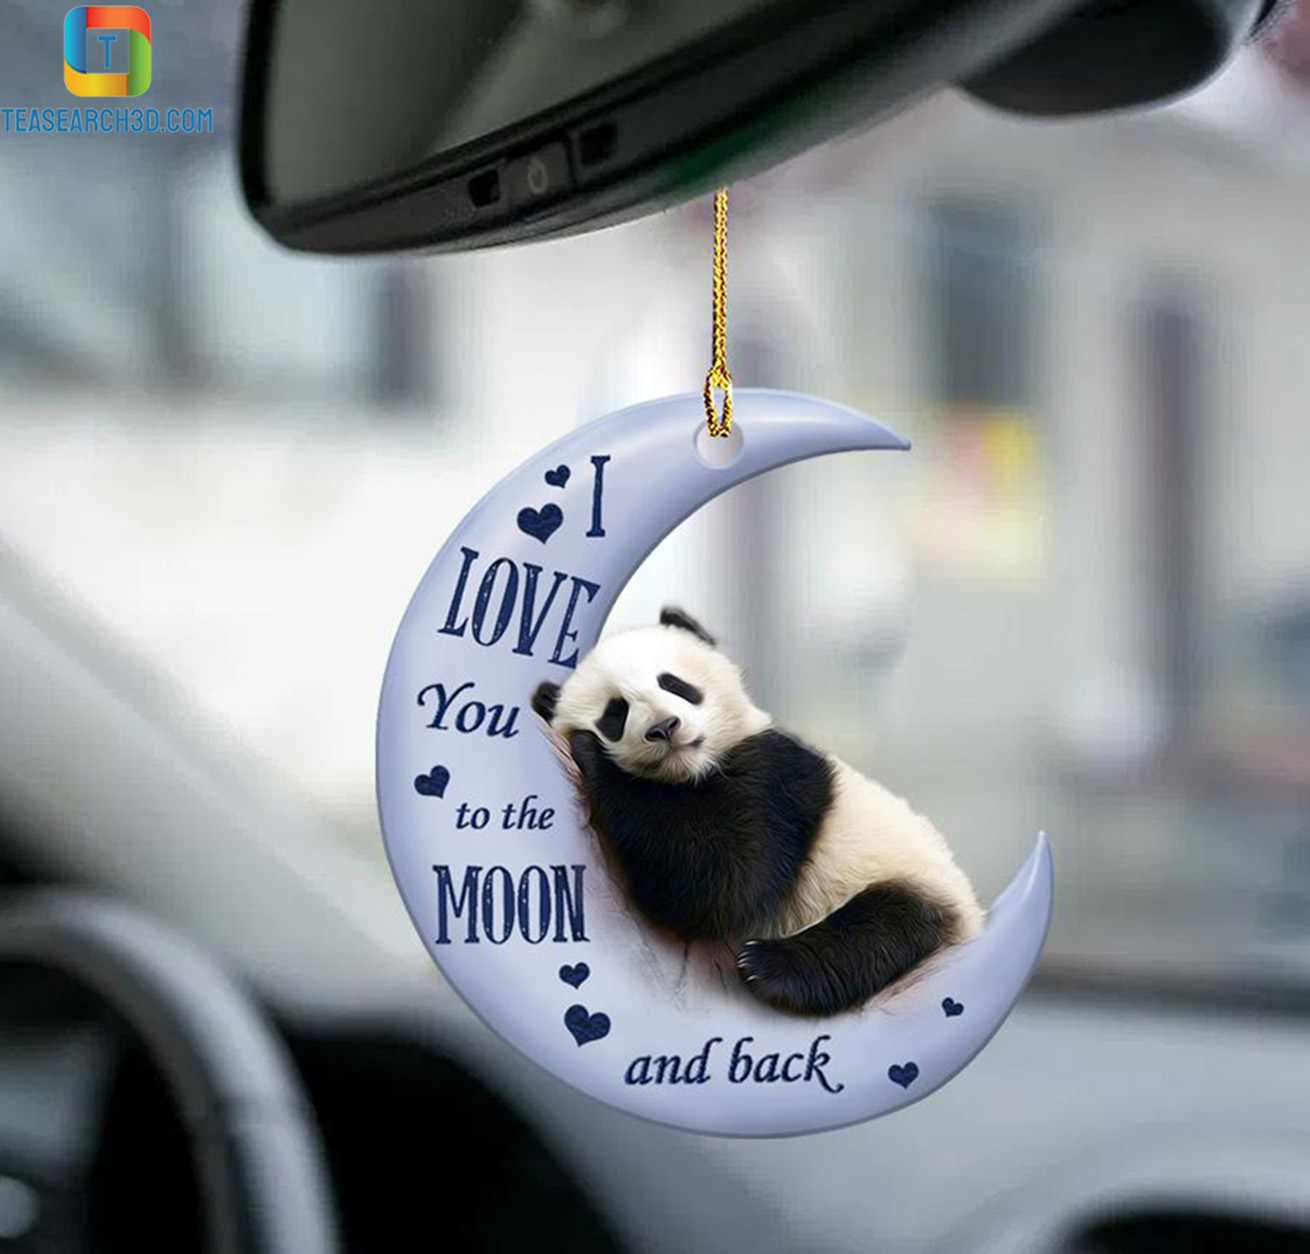 Panda I love you to the moon and back car hanging ornament 2